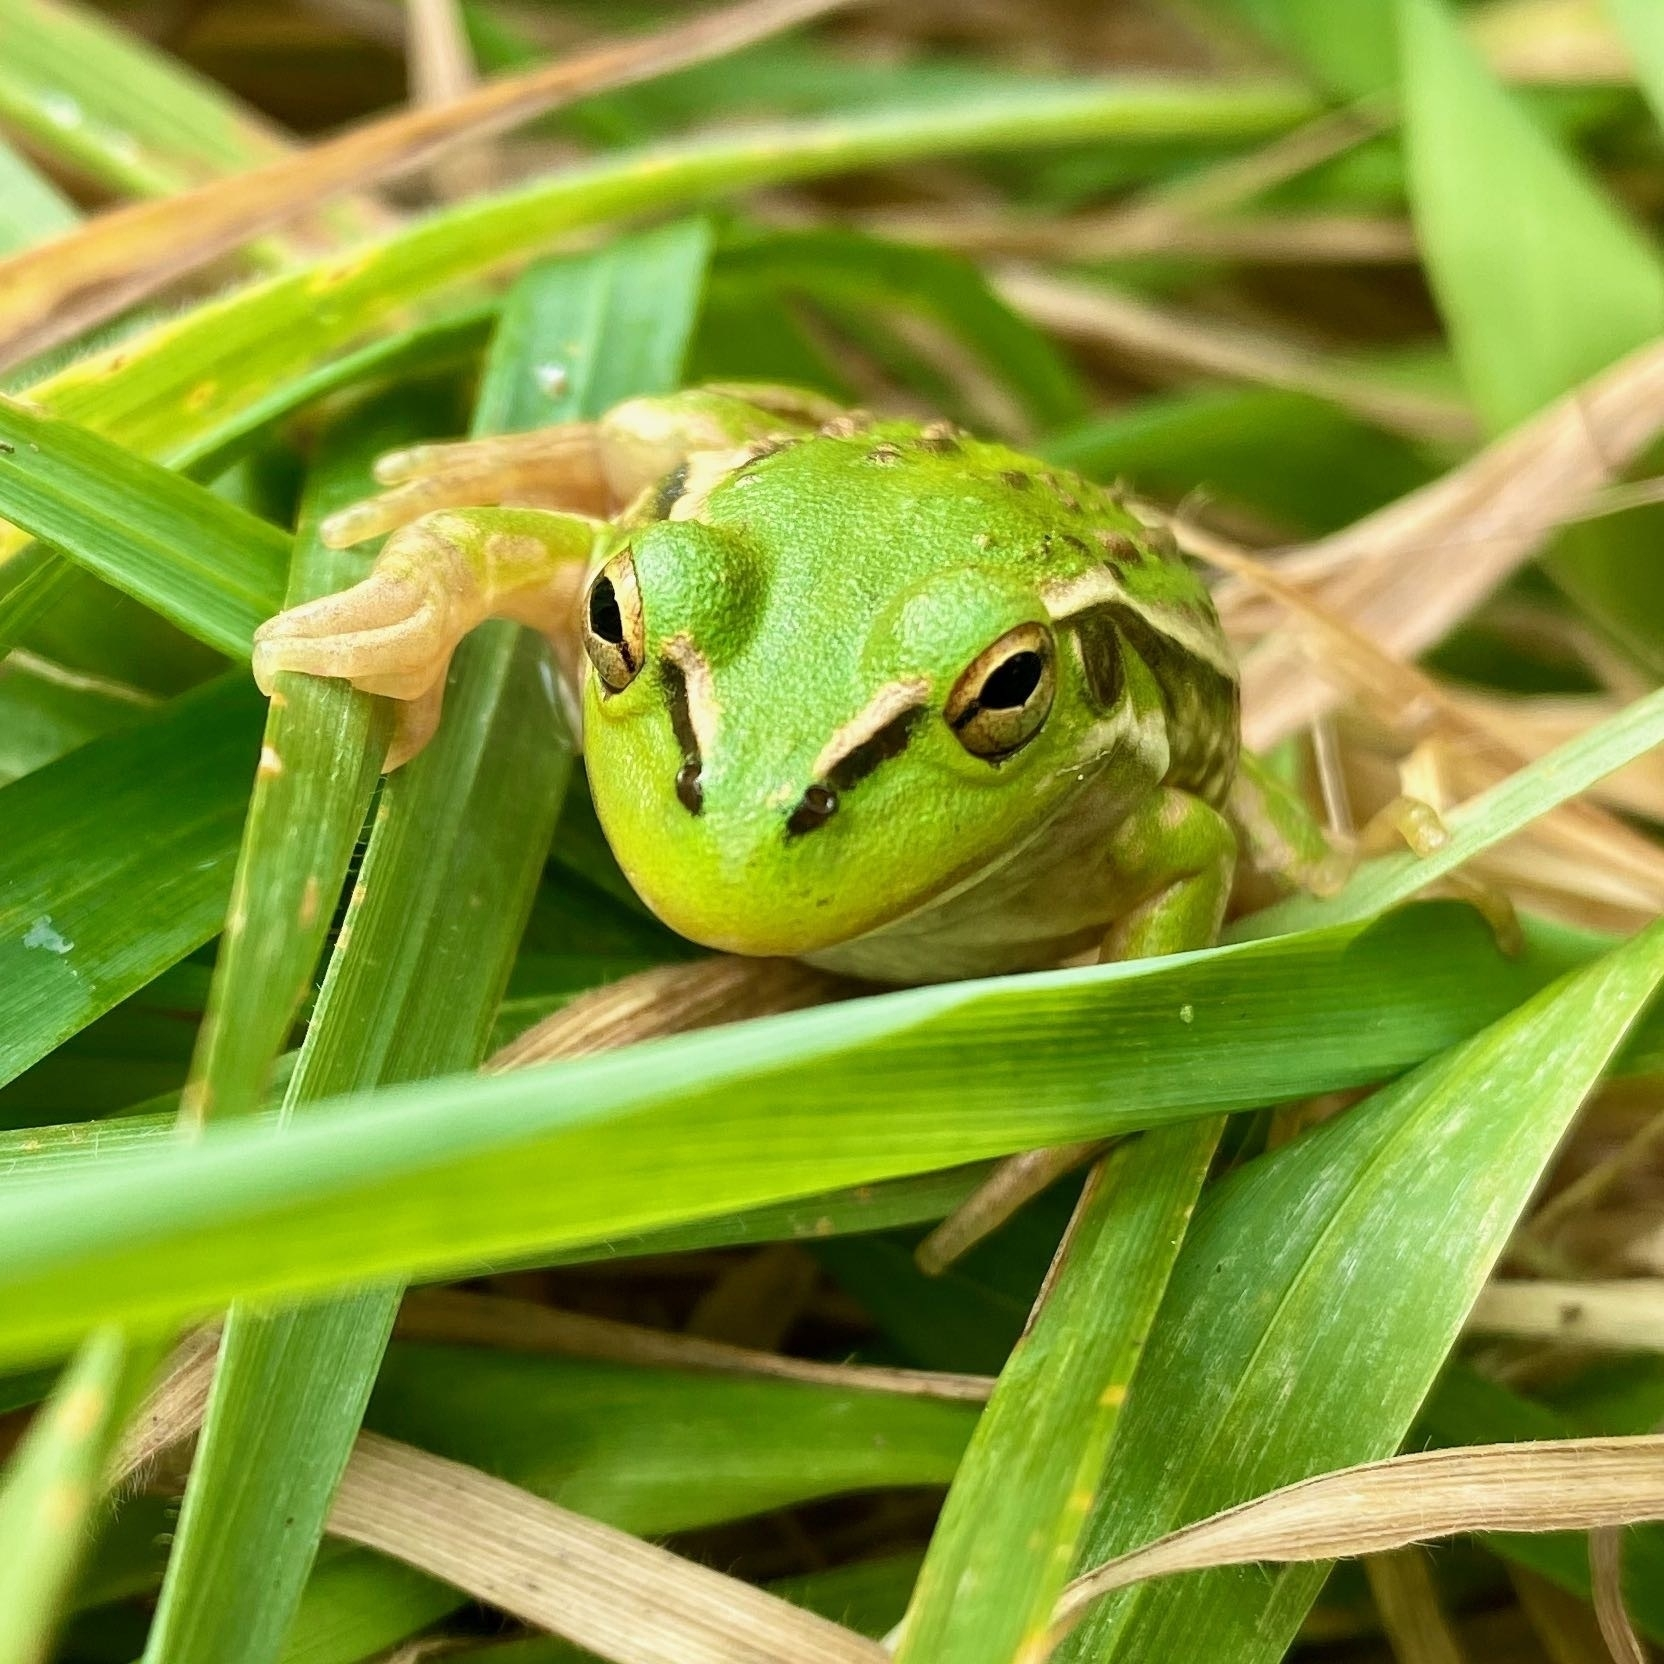 Small bright green frog with golden stripes and bumps, on grass. View of its face and feet.